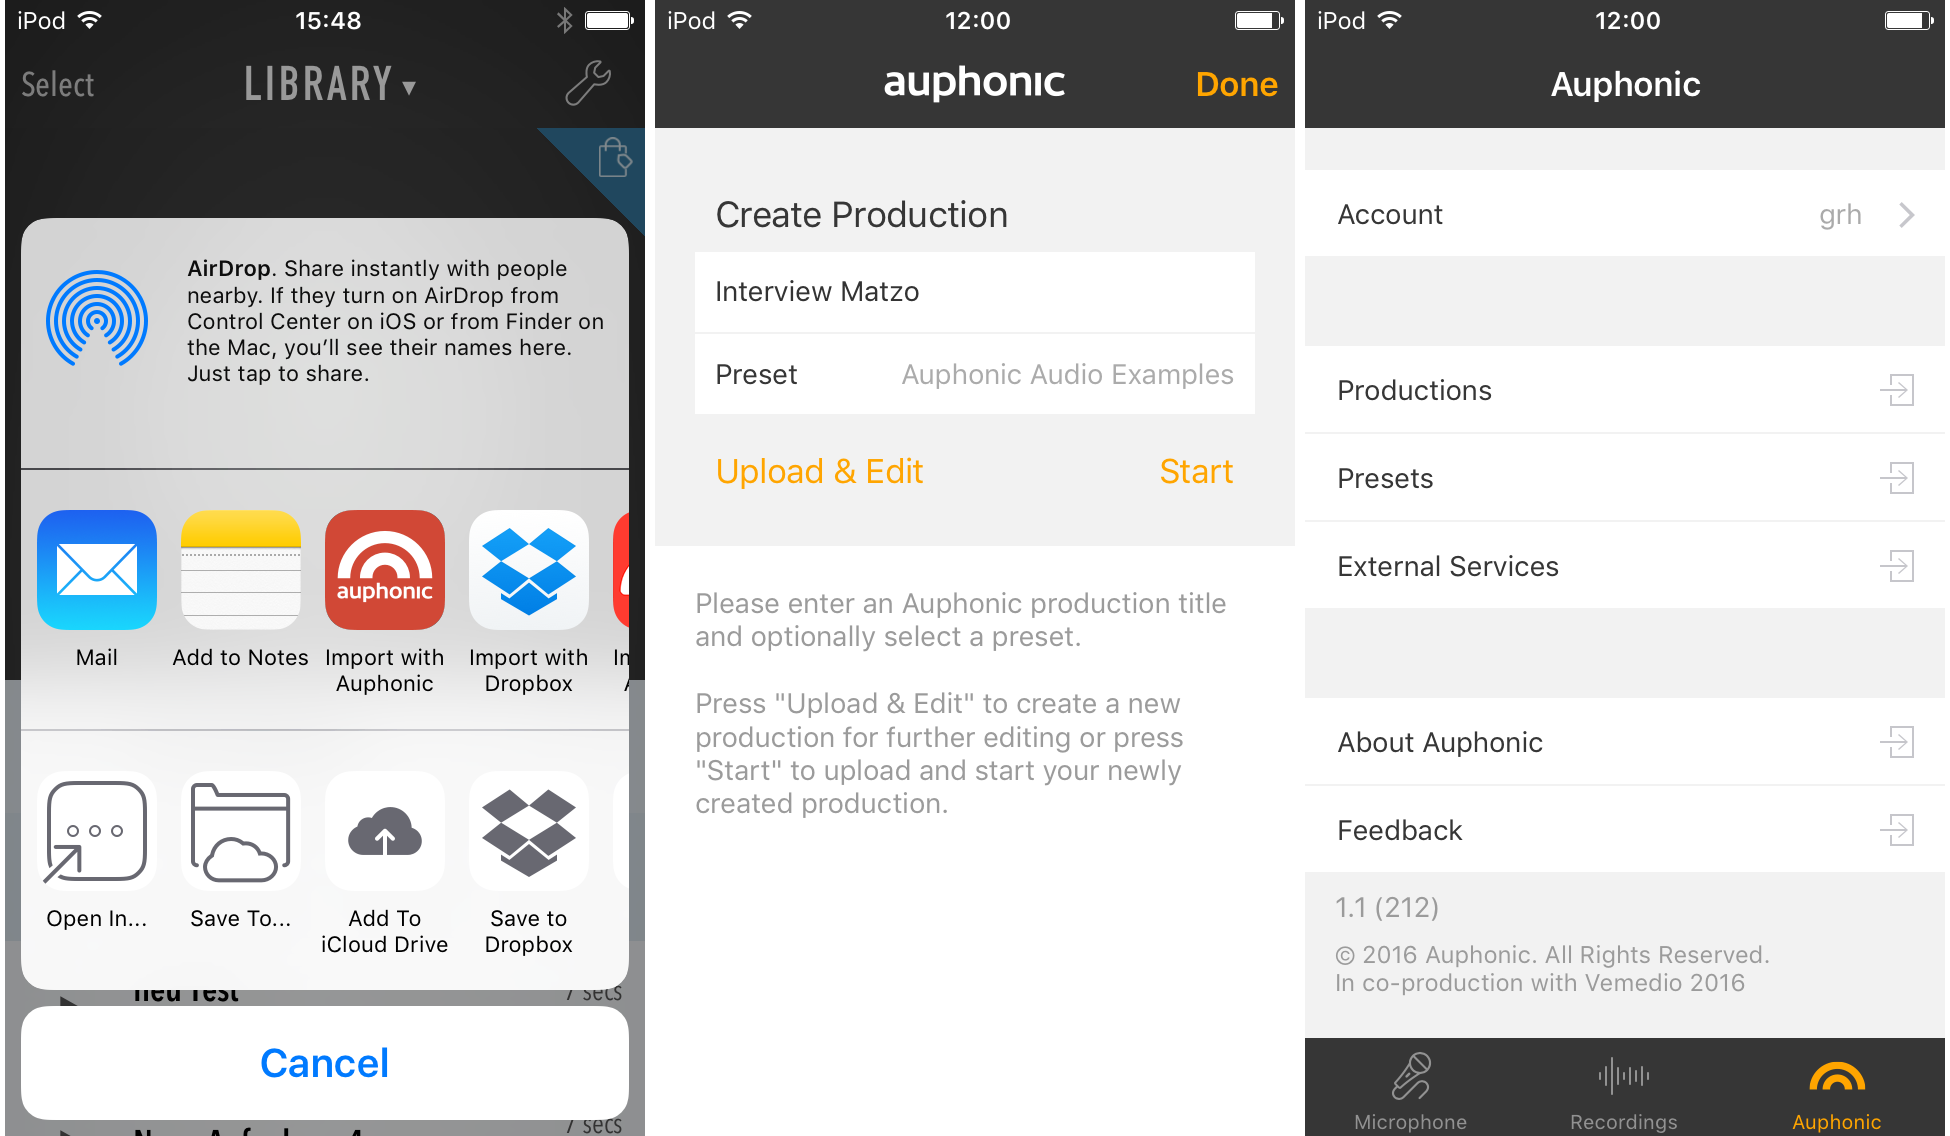 Auphonic Recorder for iOS — Auphonic Help 2019 documentation